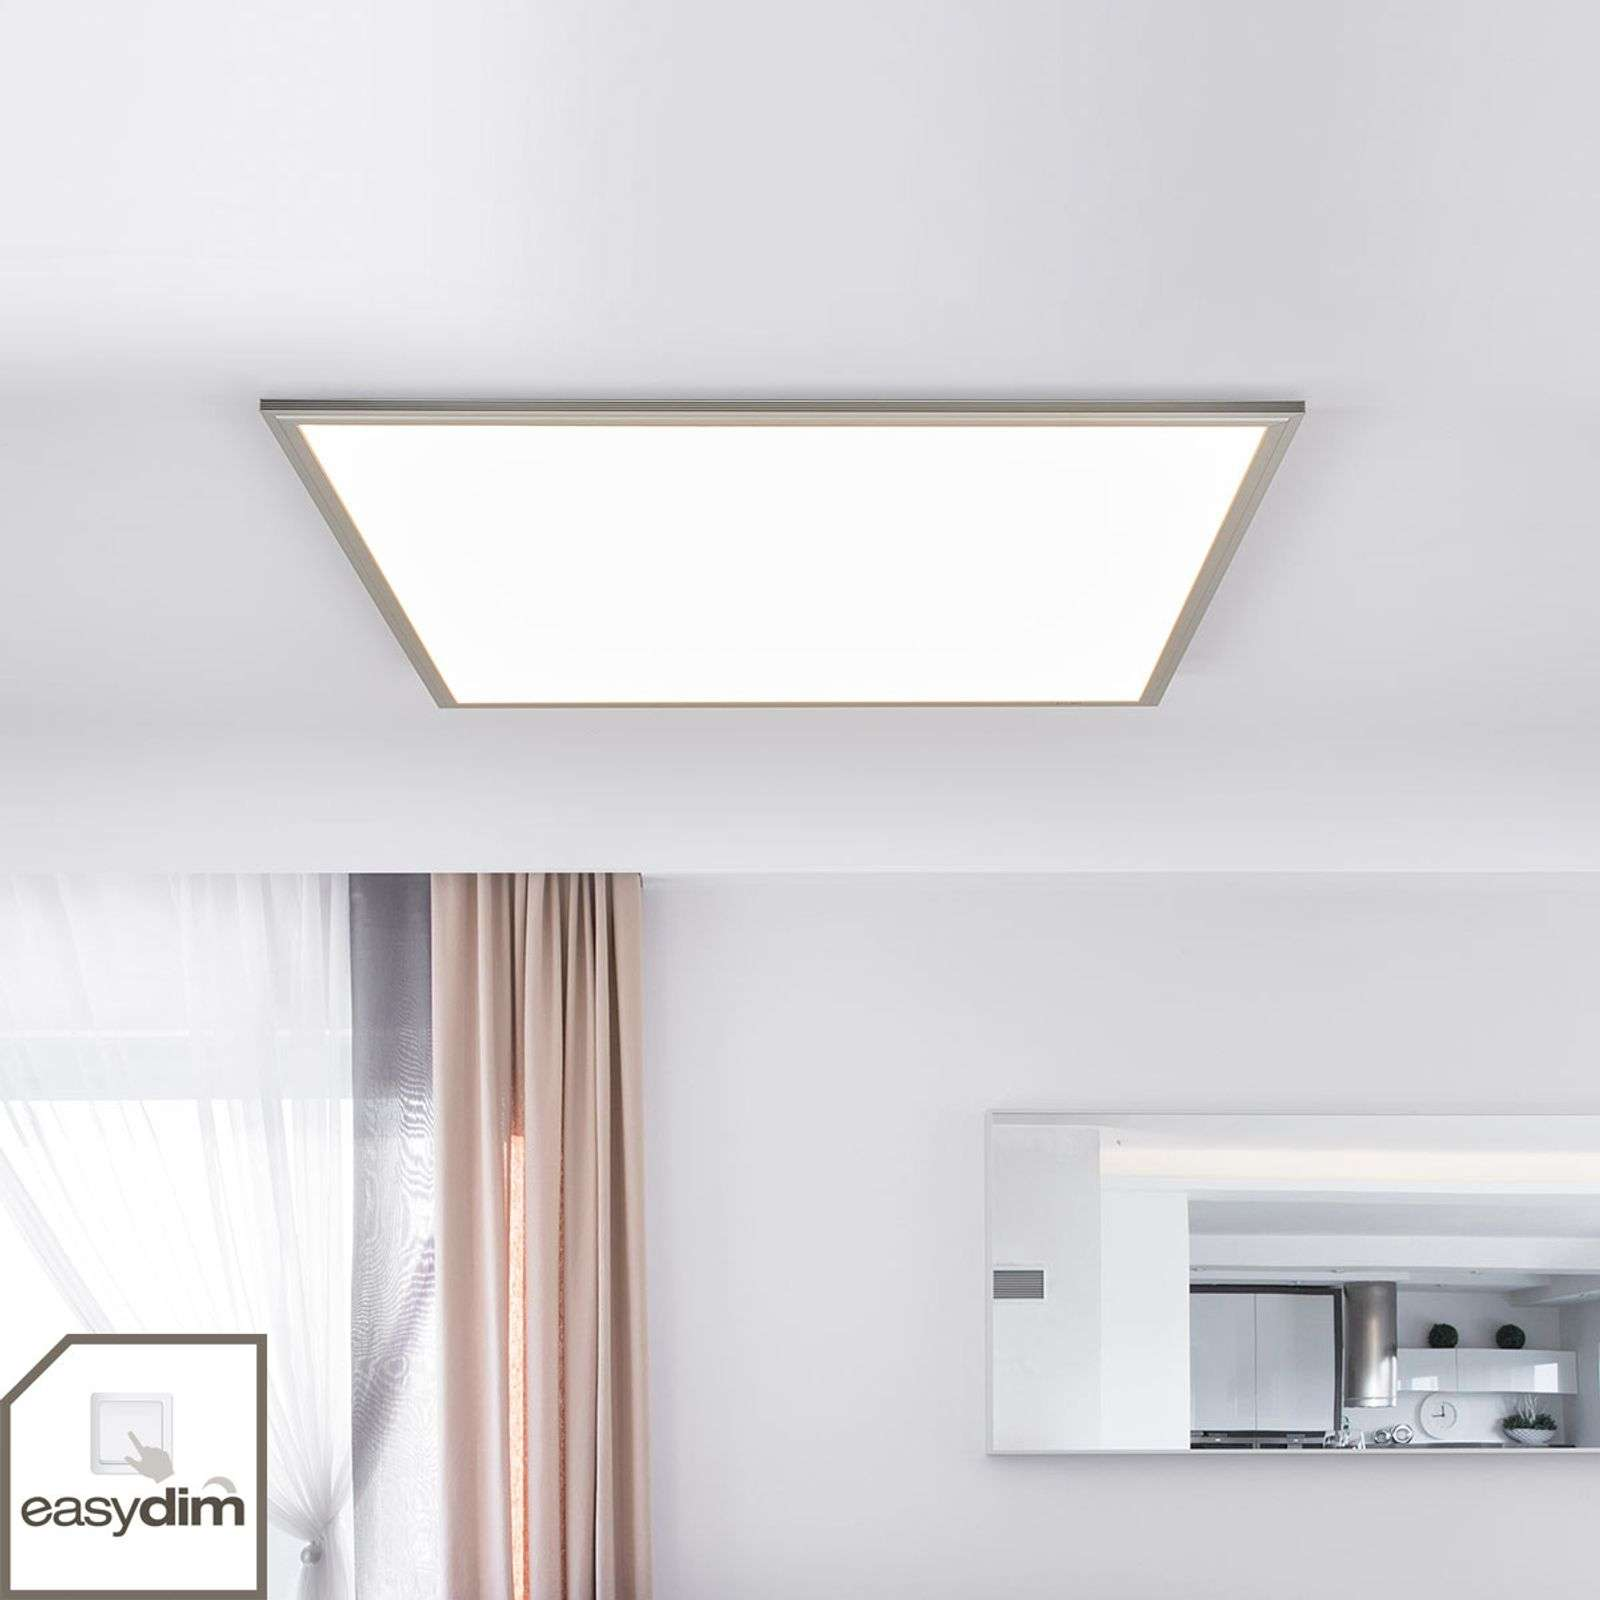 Pannello LED dimmerabile Moira di forma quadrata